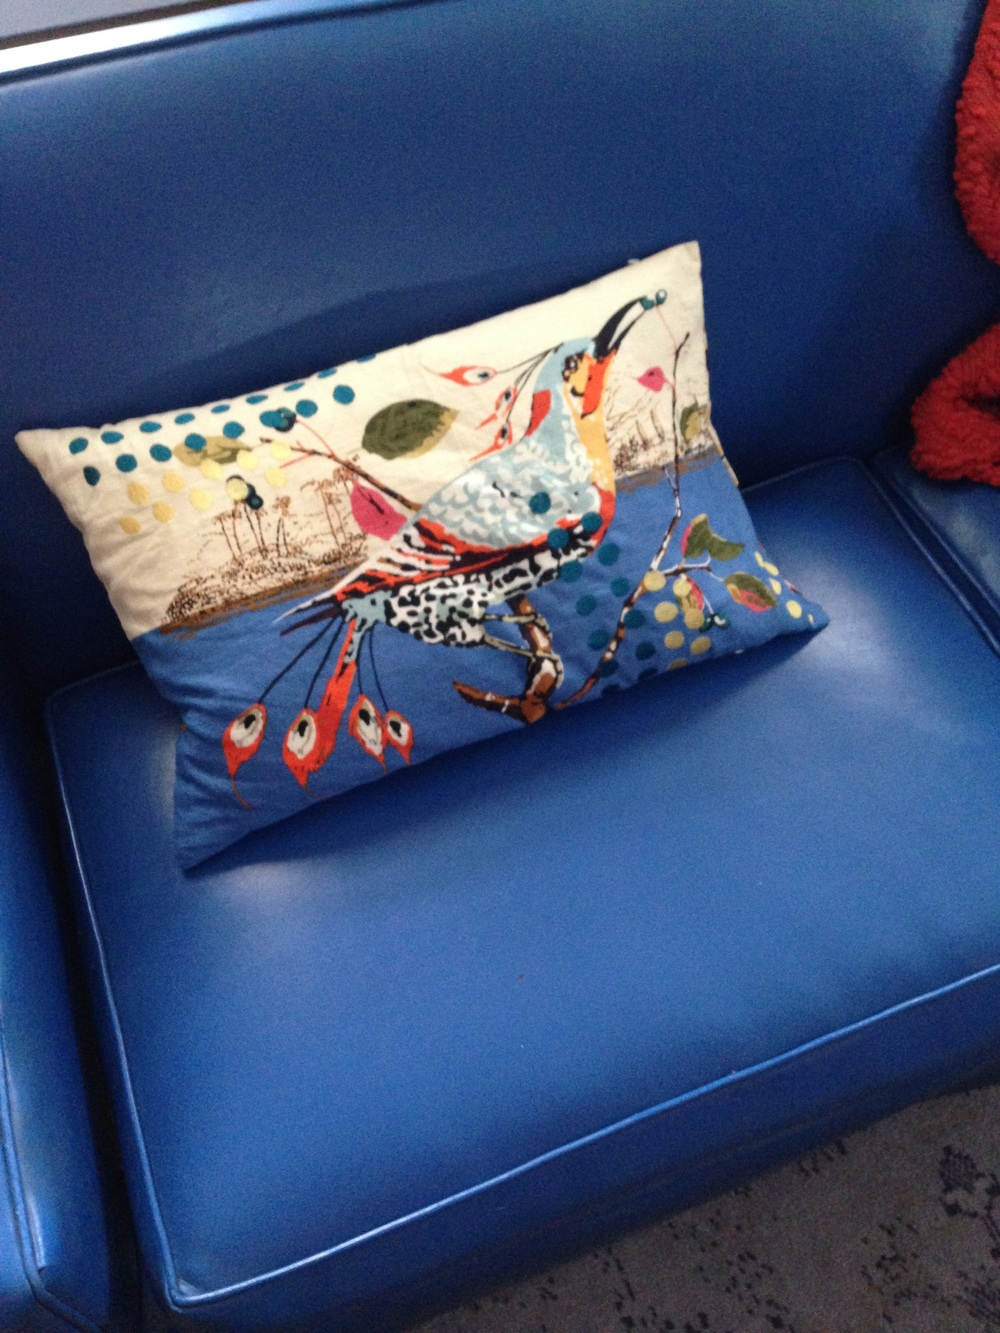 My beloved blue couch and it's feathered friend ❤️❤️❤️